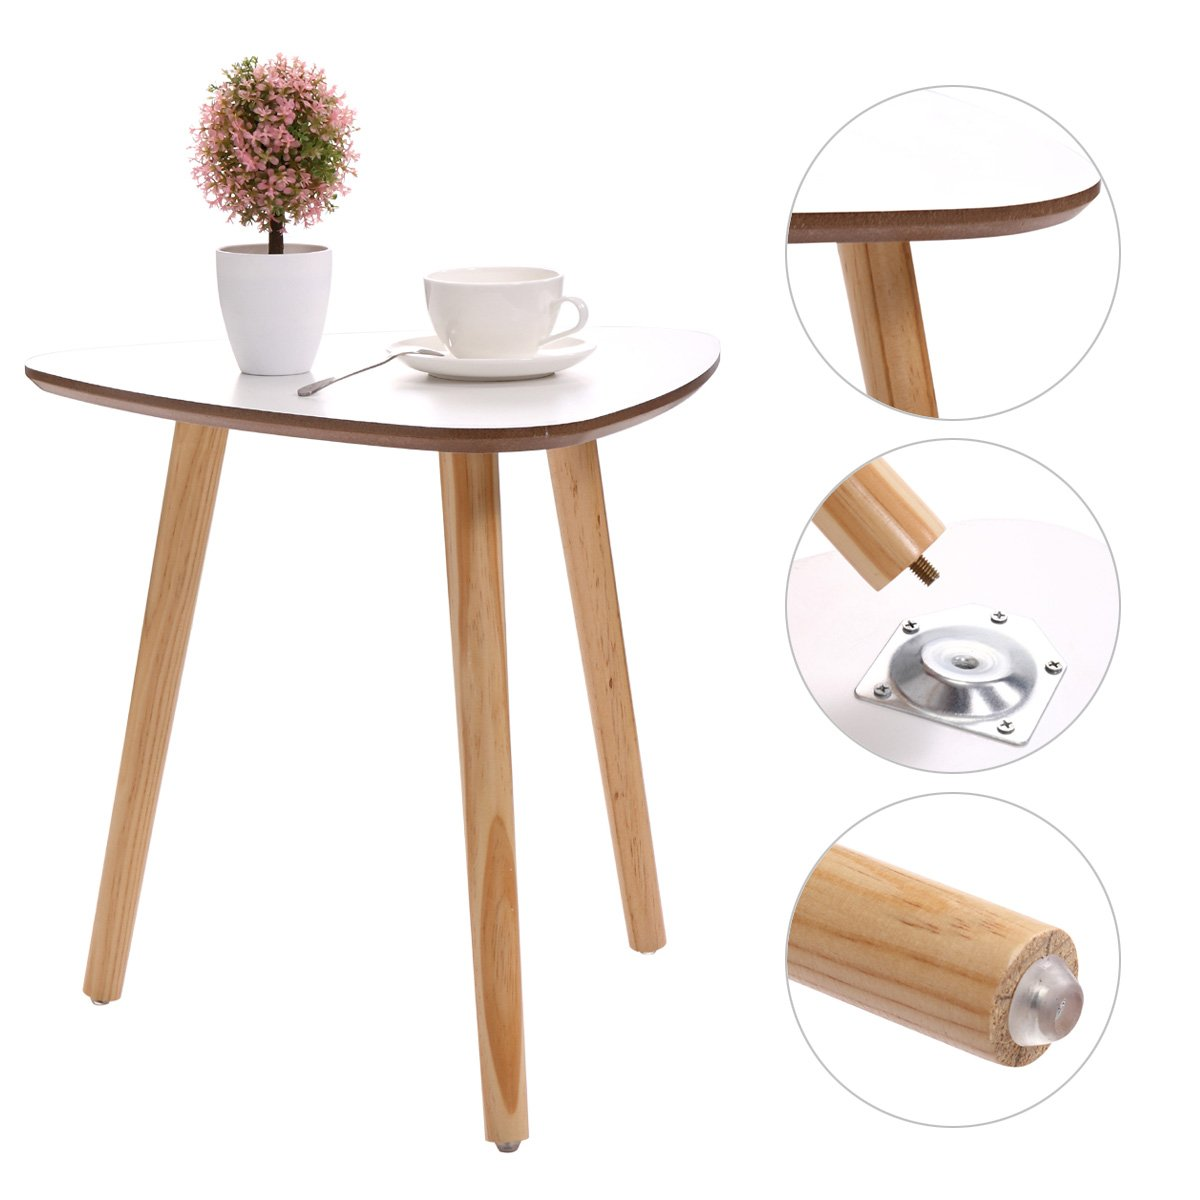 jaxpety three legged bamboo end table modern triangle round accent with screw legs coffee real furniture environmentally friendly side for magazines mid century dresser modular